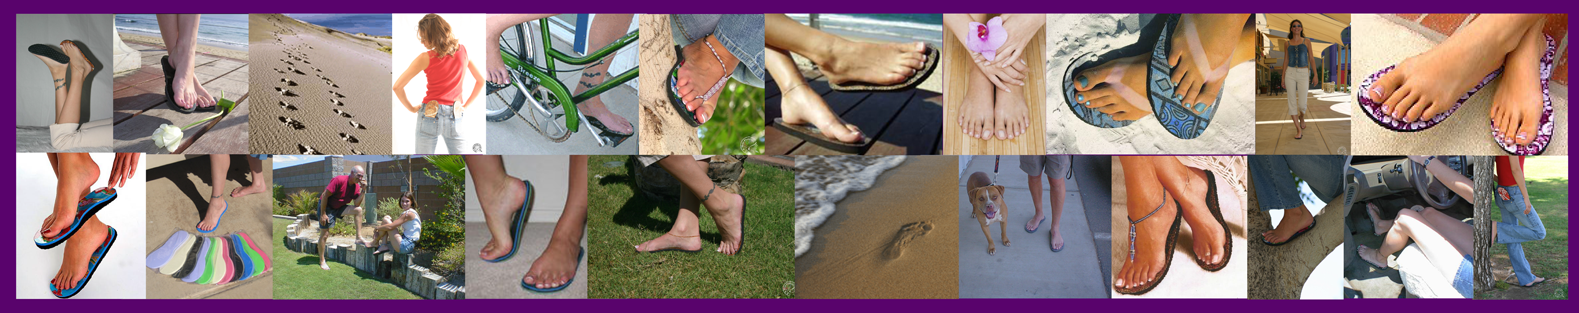 9d675b50e803 Welcome to TOPLESS STICKY SANDALS - They Stick To Your Feet!